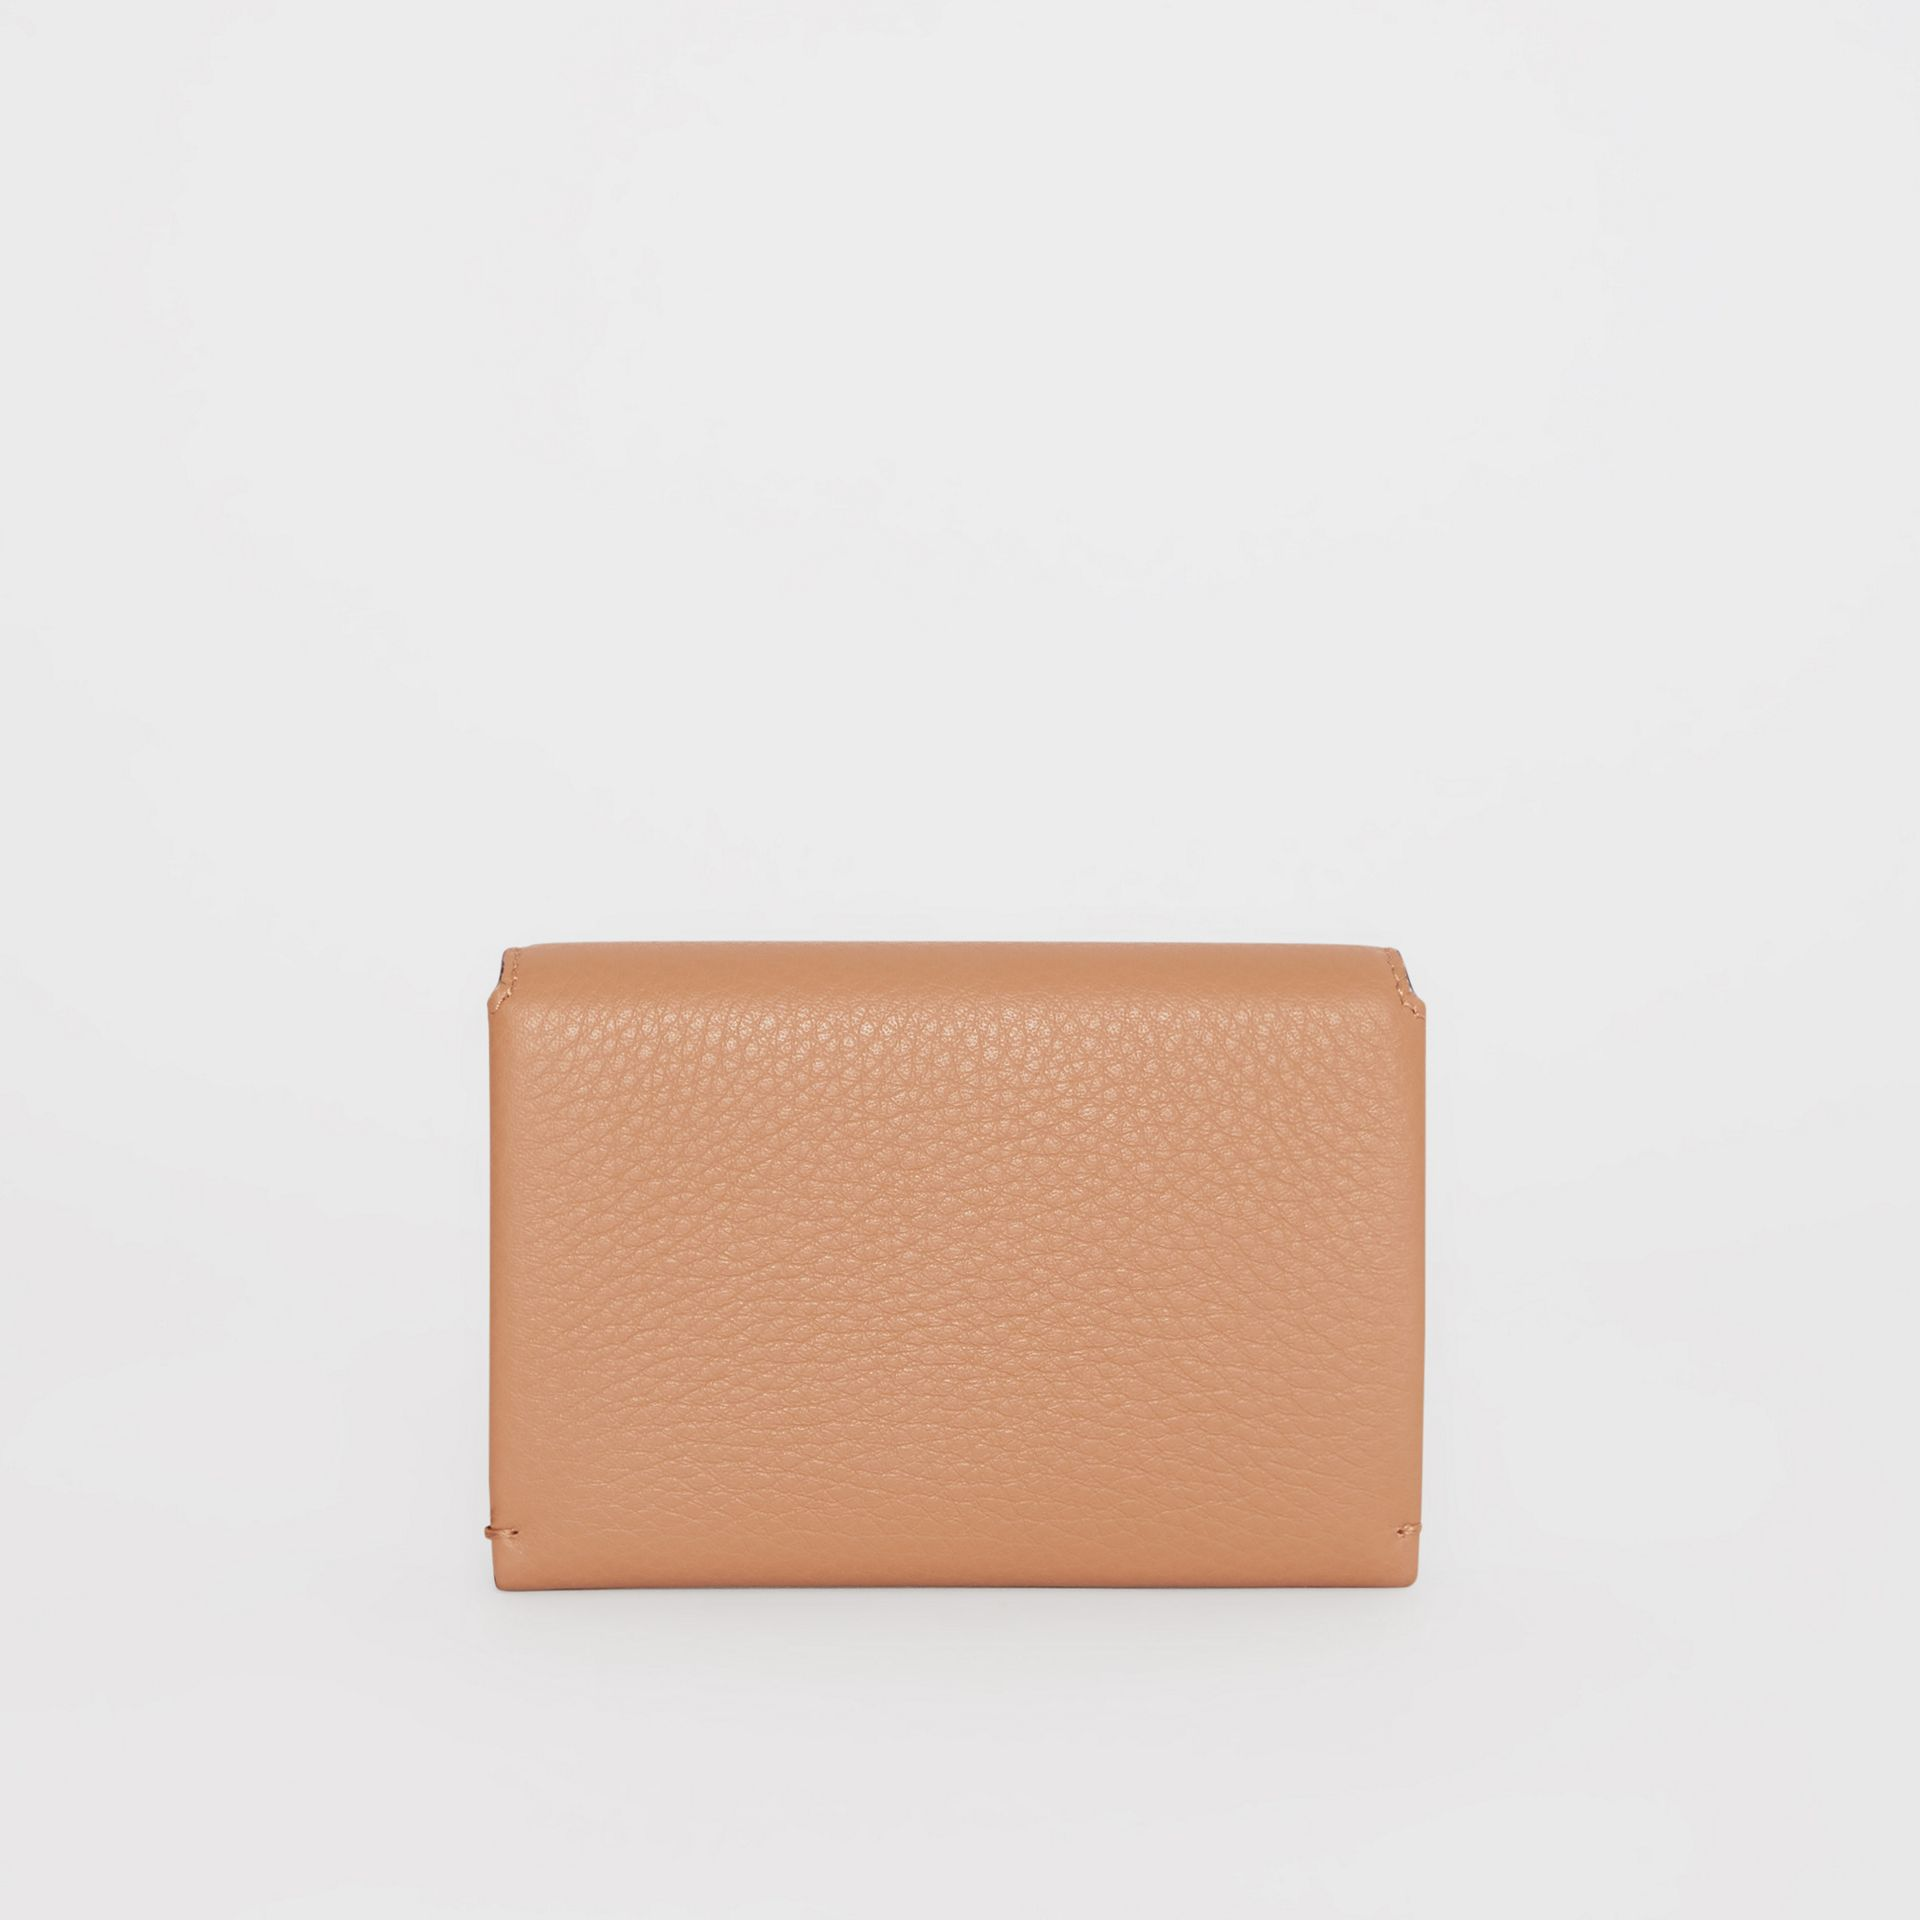 Triple Stud Leather Folding Wallet in Light Camel - Women | Burberry - gallery image 4